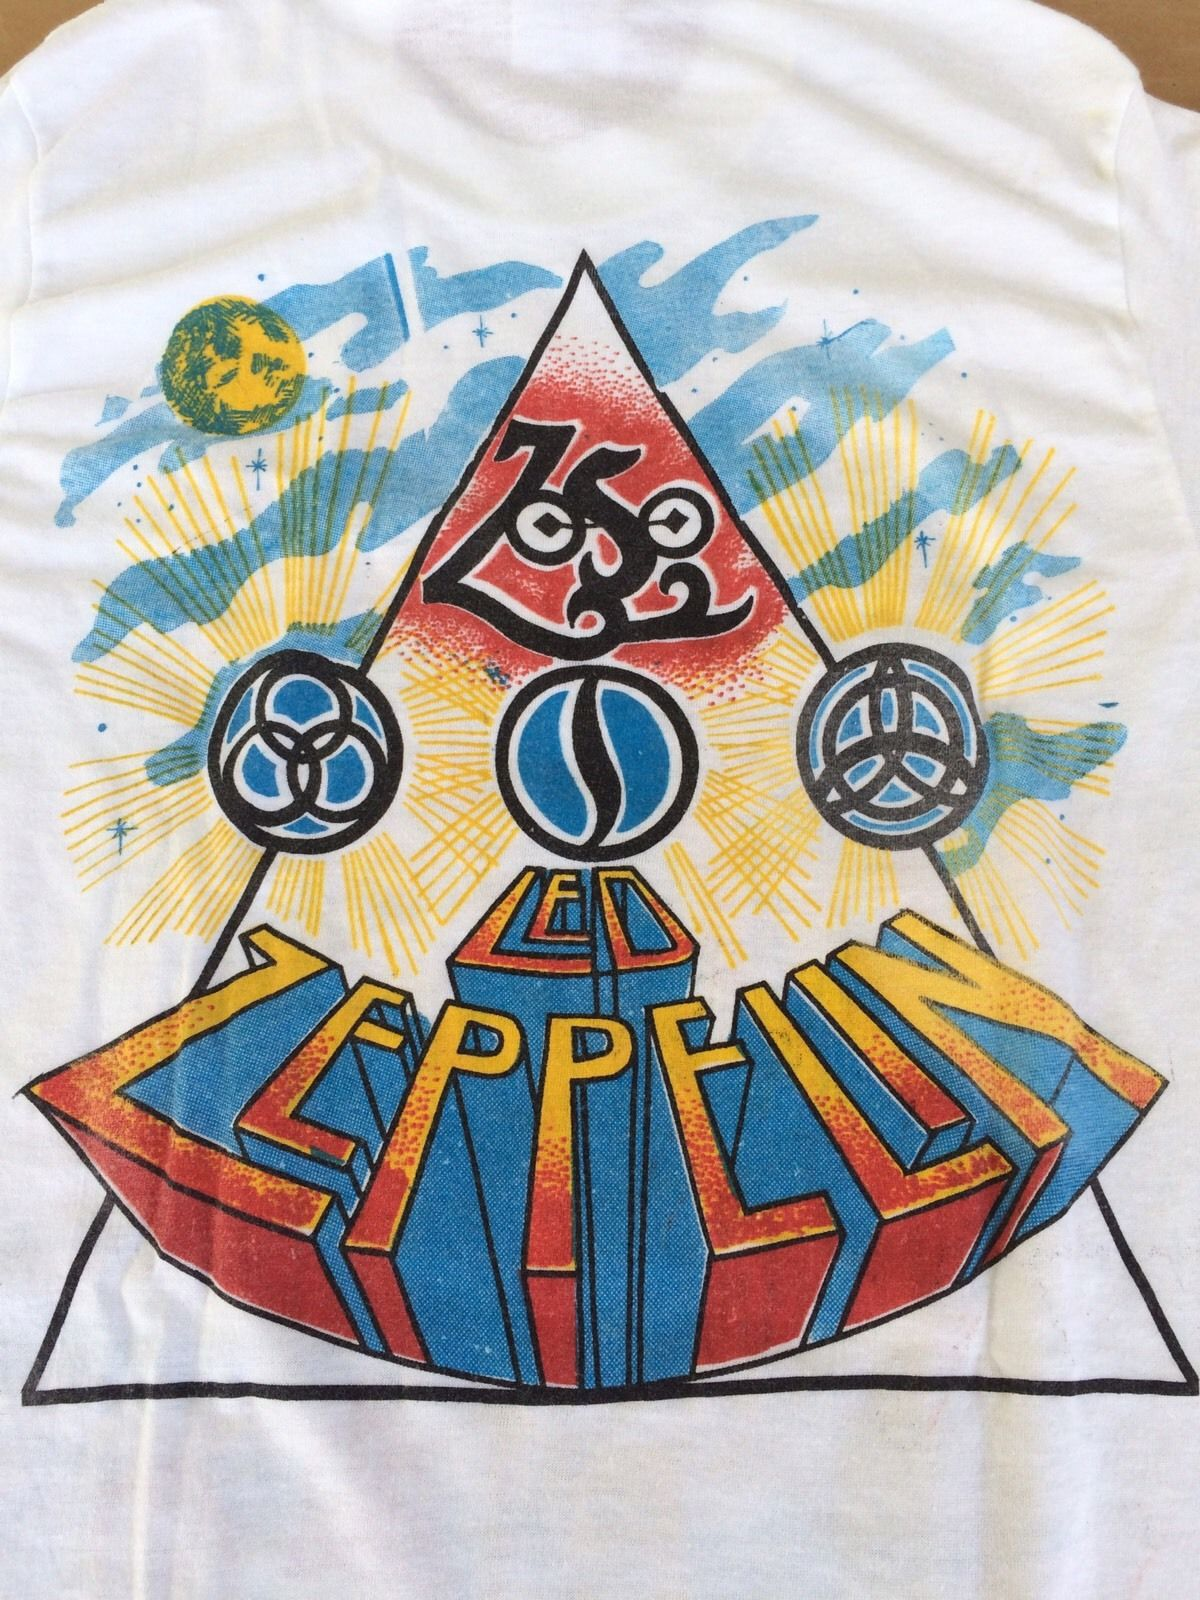 6d046f66115e VINTAGE LED ZEPPELIN T SHIRT JOHN BONHAM EXCELLENT CONDITION RARE 50/50-in T -Shirts from Men's Clothing on Aliexpress.com   Alibaba Group